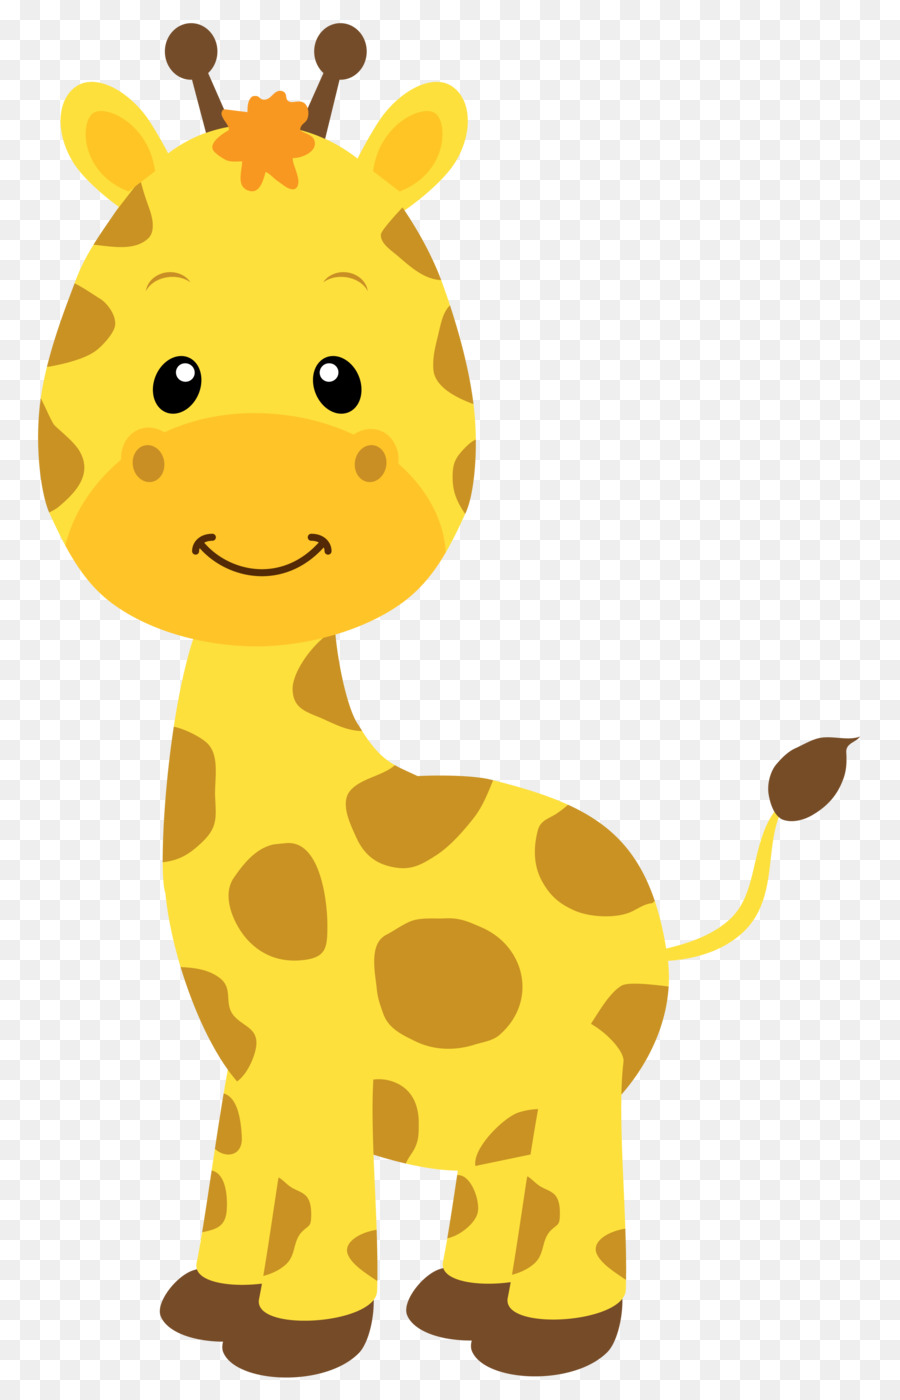 Giraffe clipart jirafa, Giraffe jirafa Transparent FREE for.